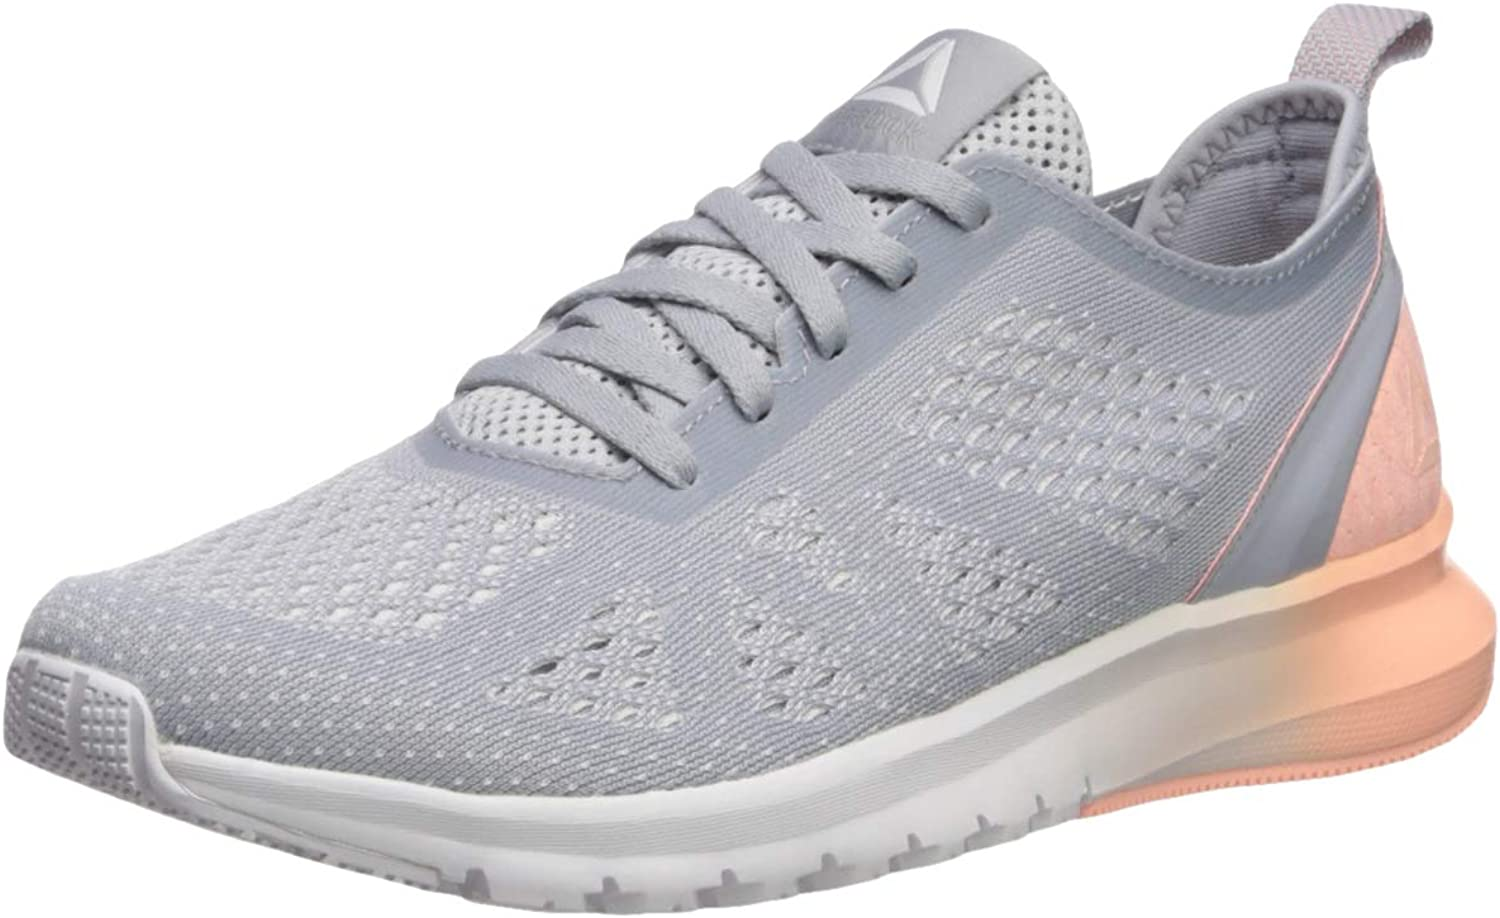 Reebok Women's Print Smooth Clip ULTK Running shoes